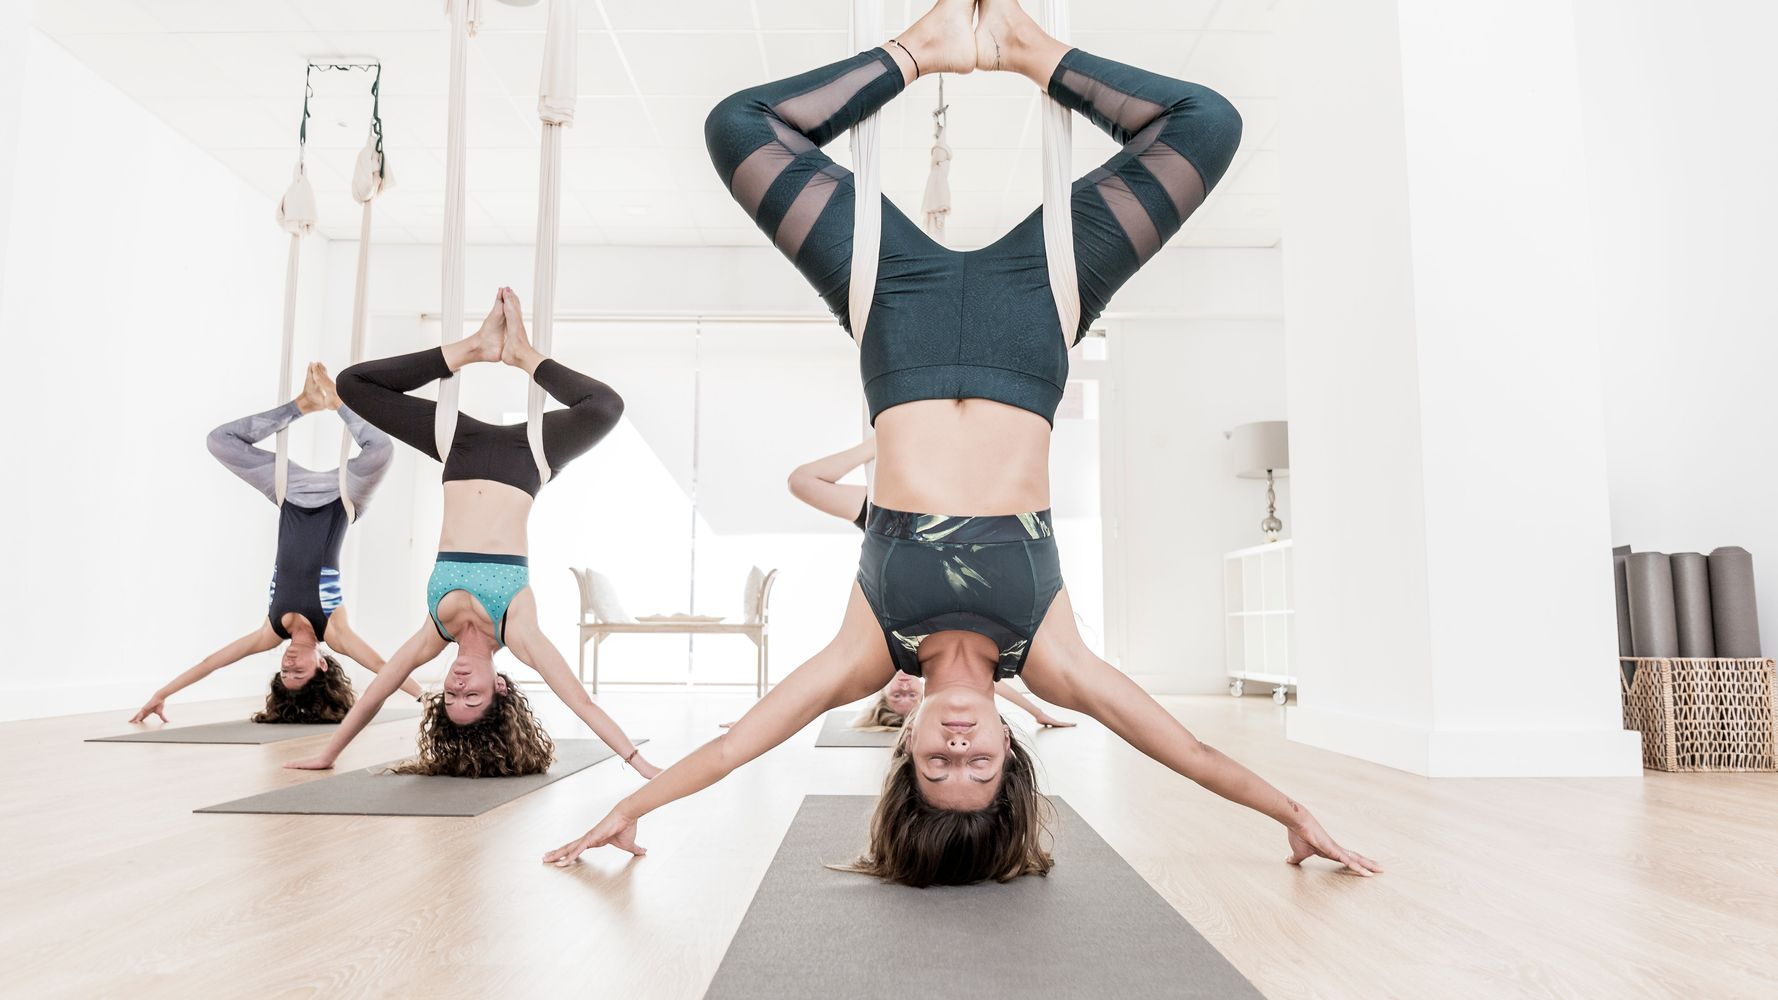 Aerial Yoga Could This Be Your New Workout   HuffPost UK Life